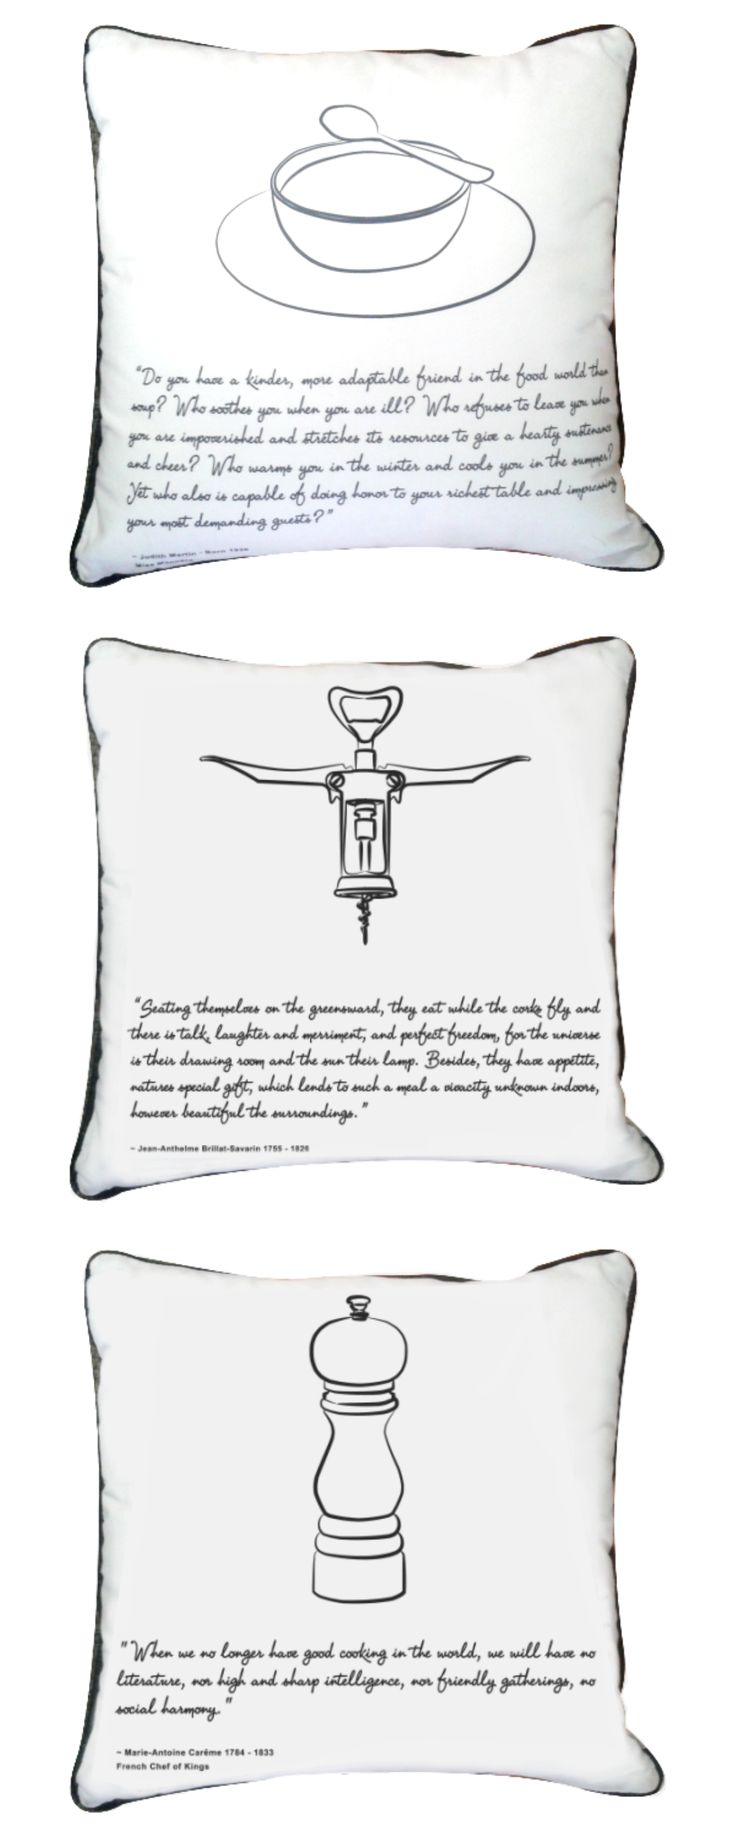 Feast Scatter Cushions - The art of eating and the ritual of a feast - perfectly captured in our range of Feast Scatter Cushions. #cushions #white #grey #quotes